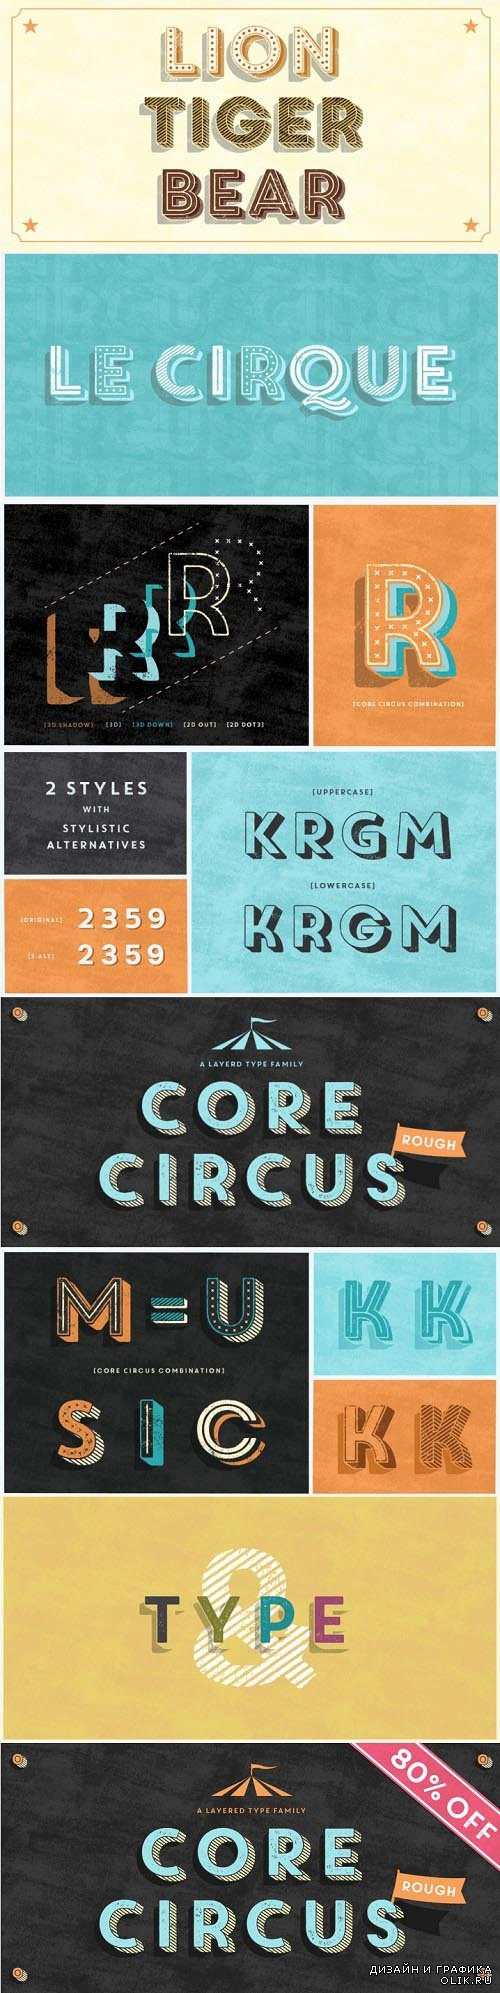 Core Circus Rough Font Style